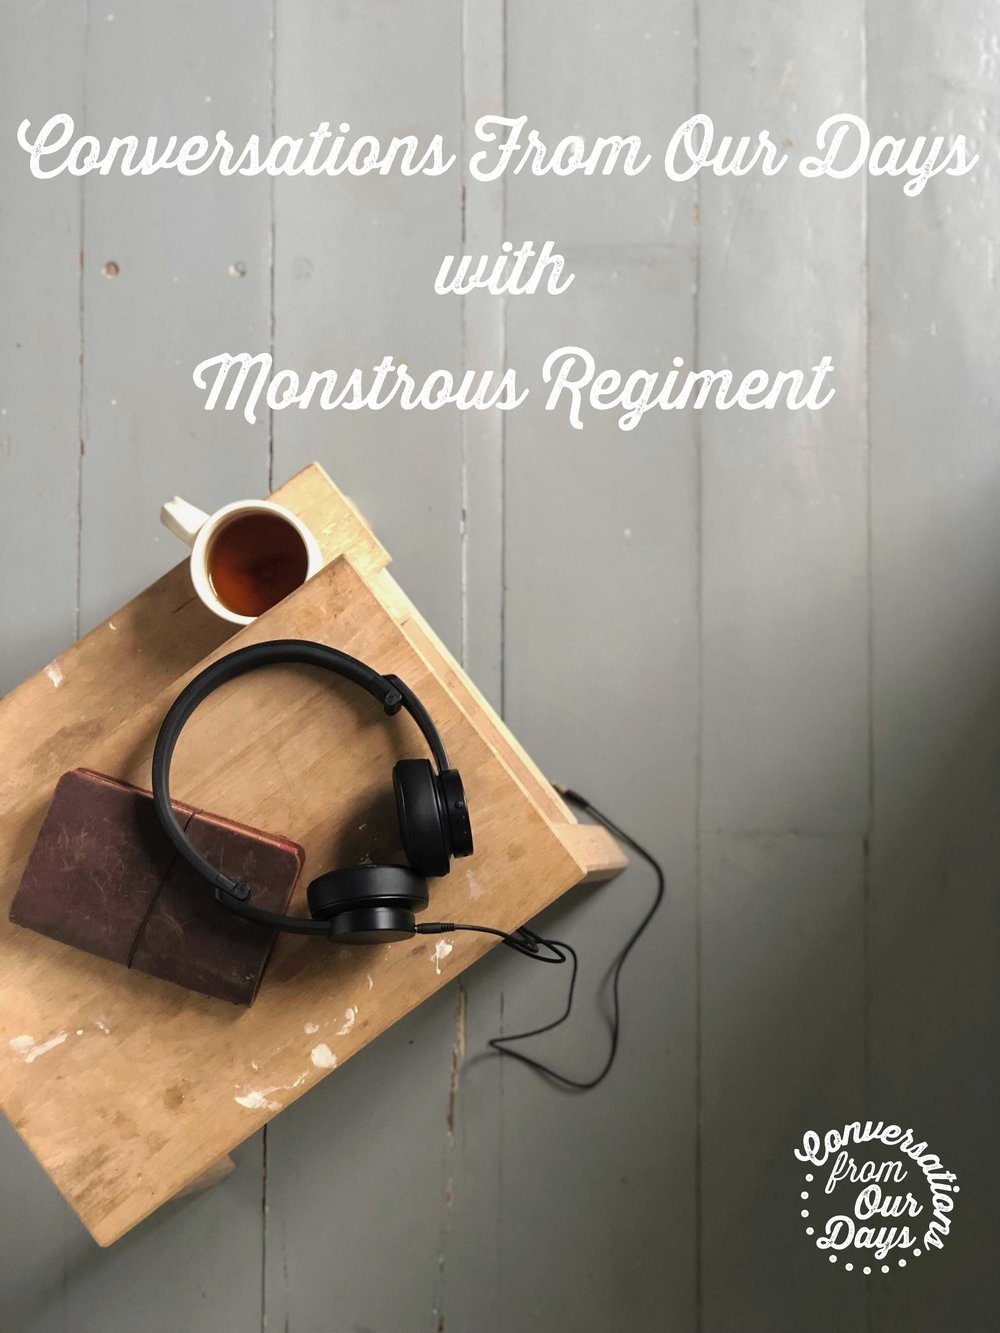 Conversations from our days with Monstrous Regiment